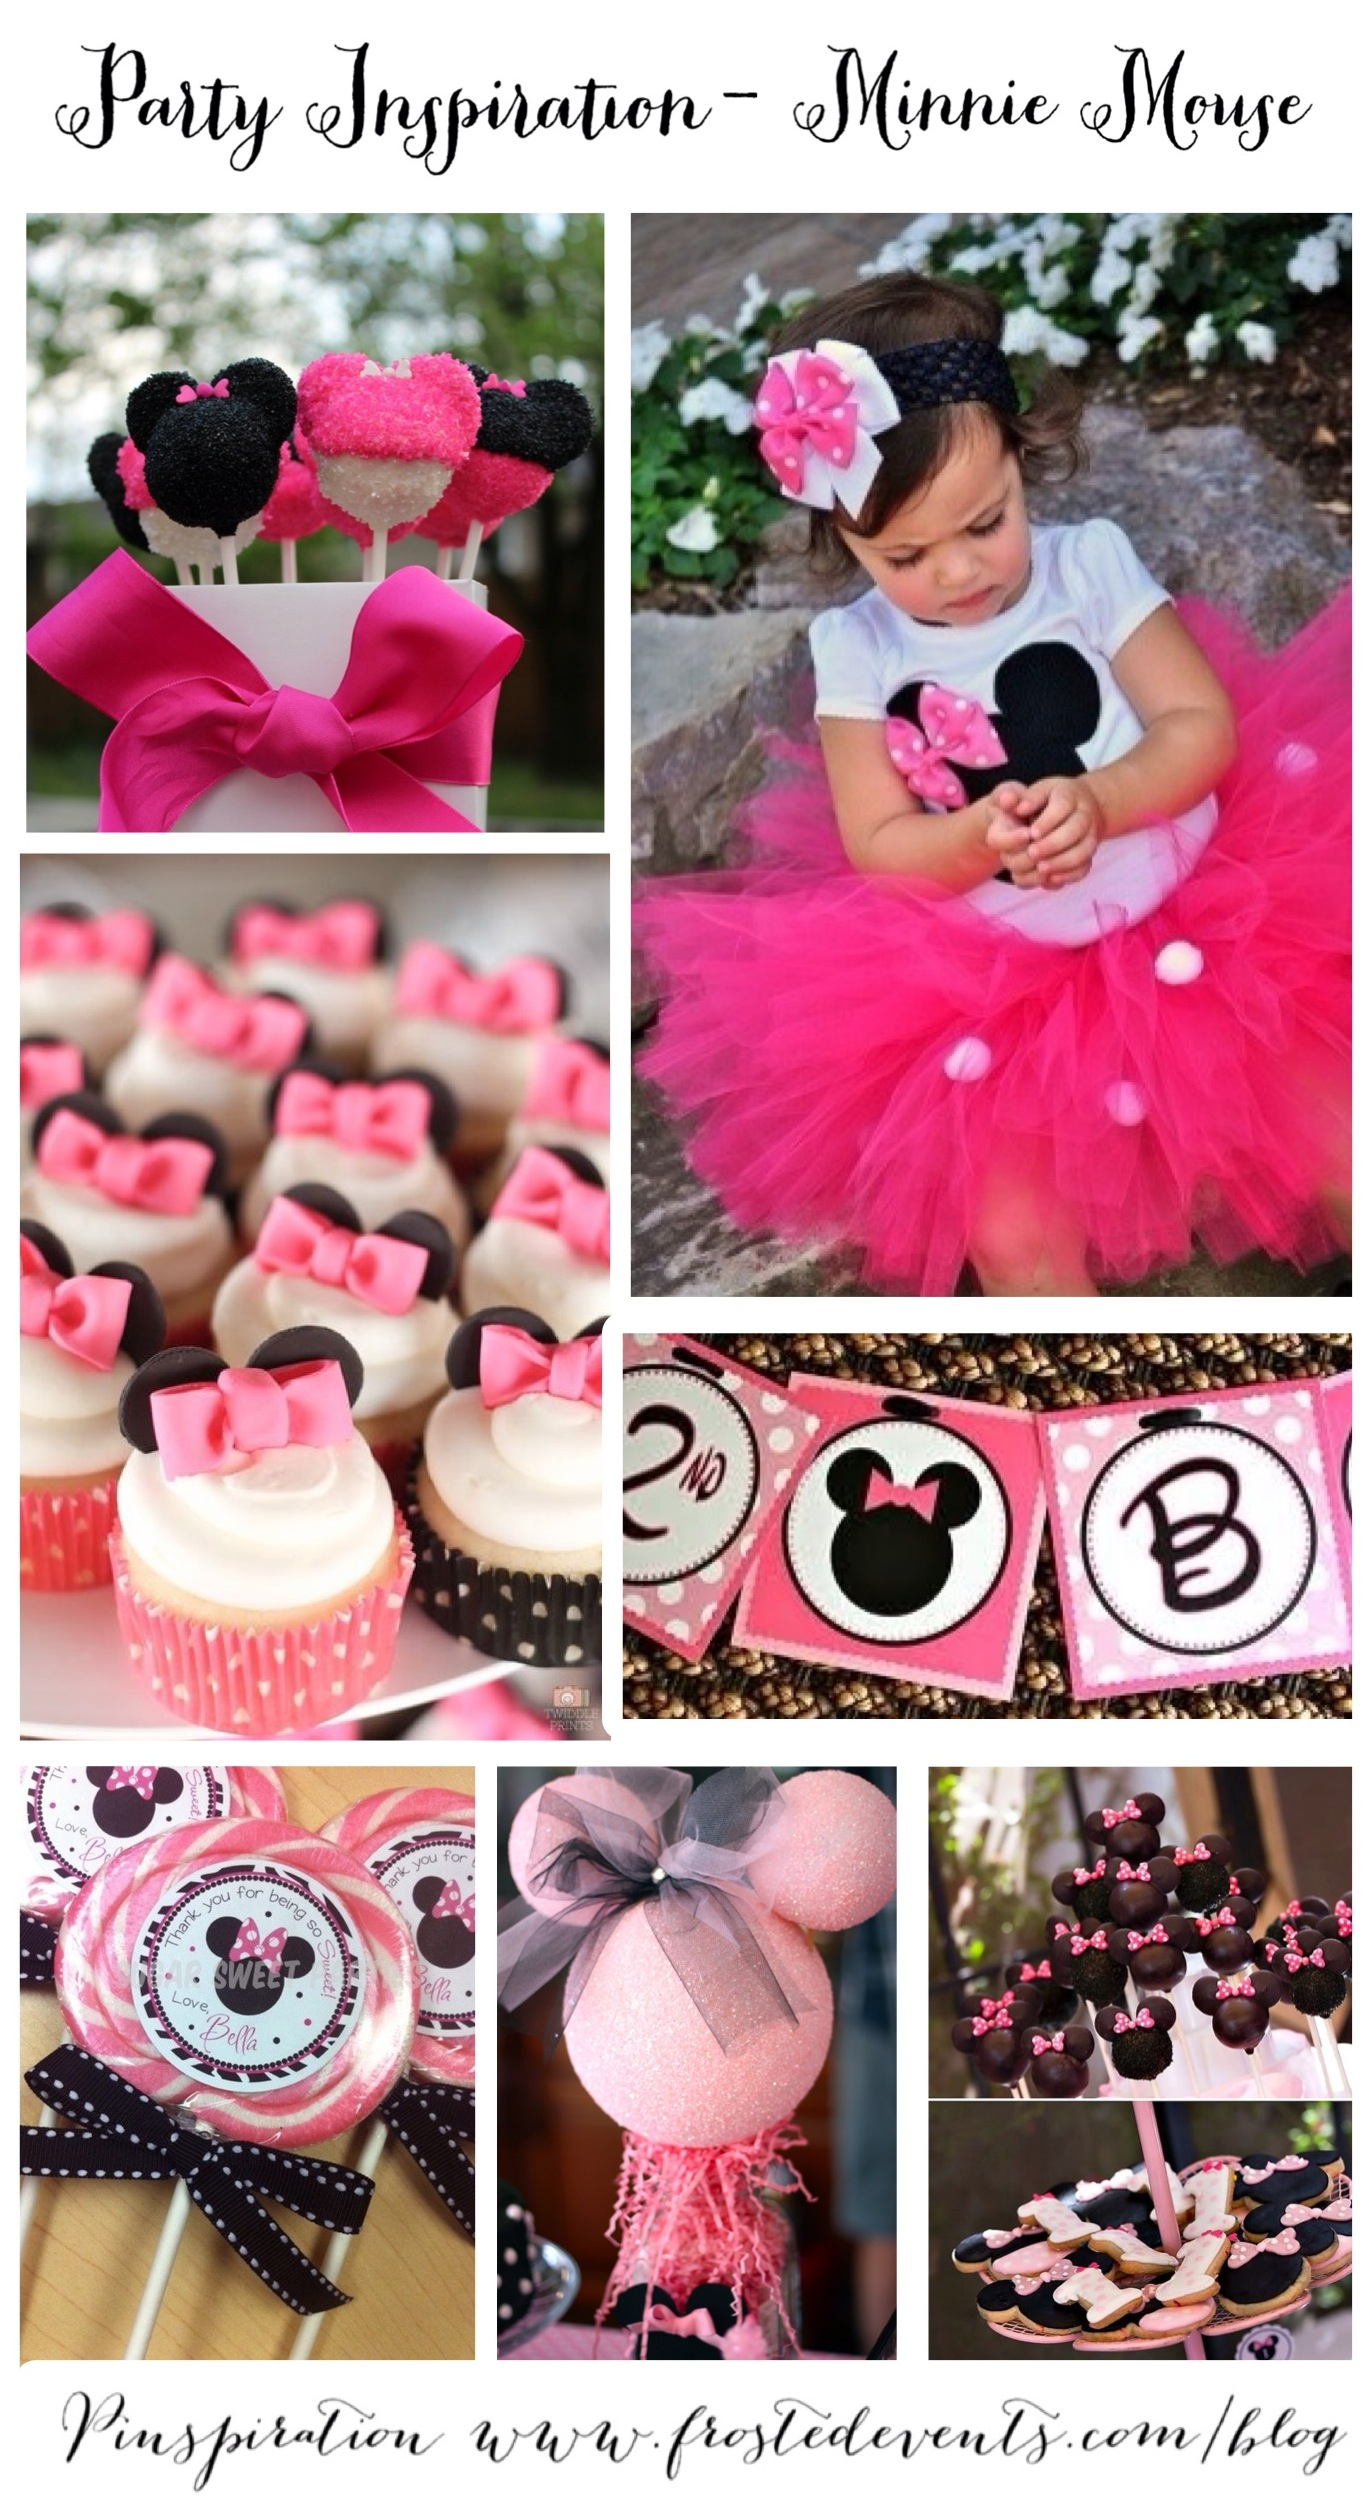 Minnie Mouse Birthday Party Ideas & Inspiration Party Planner Guide www.frostedevents.com